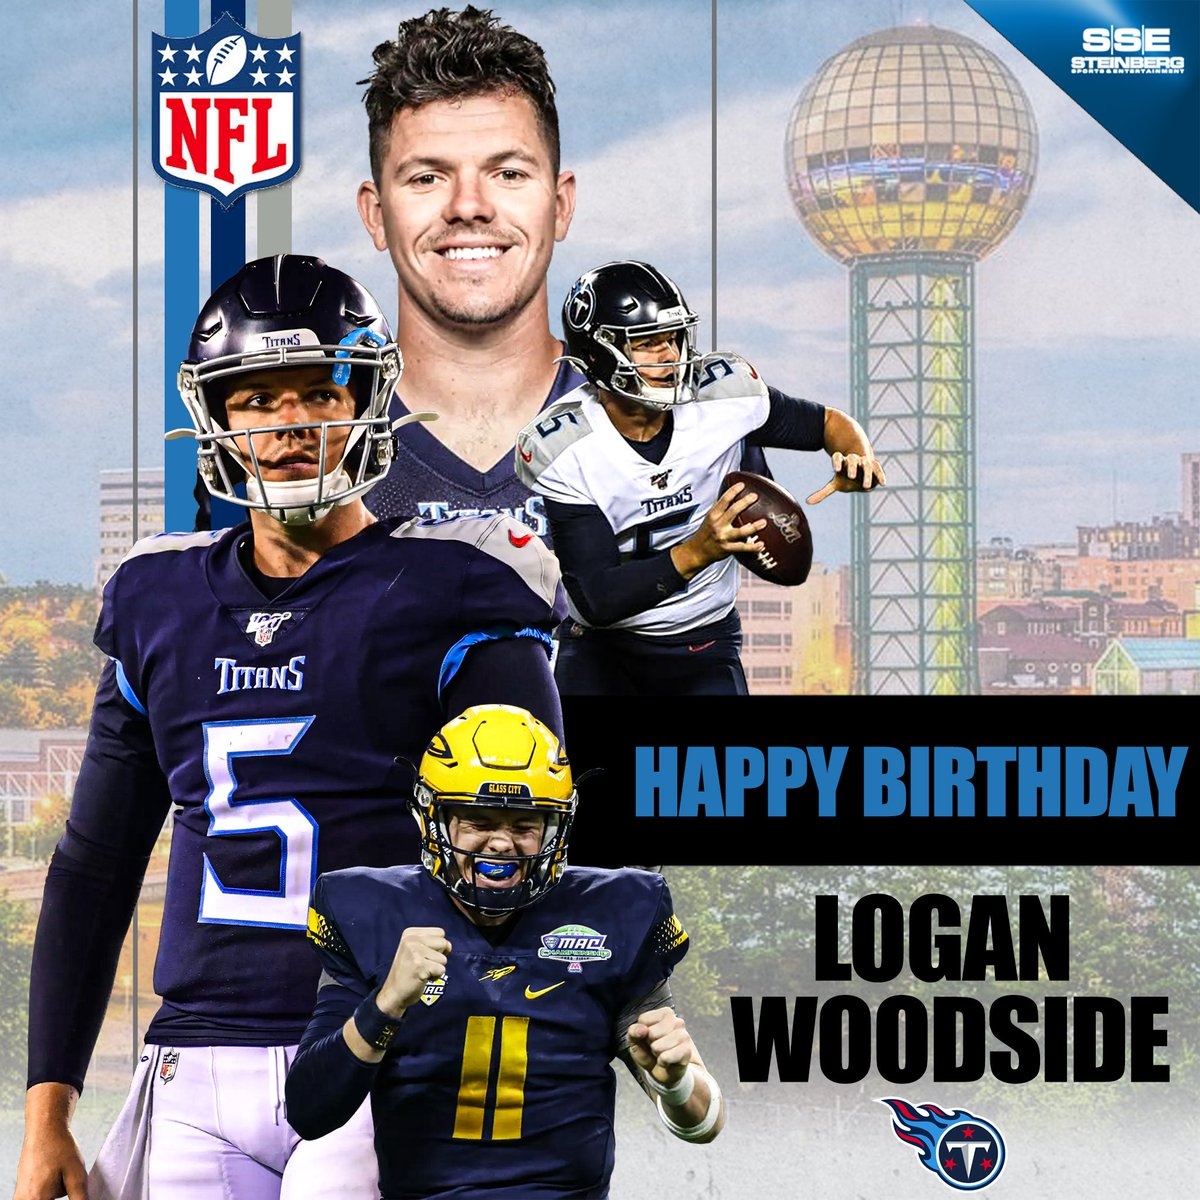 Happy 25th birthday to the man @LwoodsideQB5! We hope this is the best one yet! Enjoy your special day Logan, you deserve it! #TitanUp #TennesseeTitans pic.twitter.com/bp5V3HsFDS